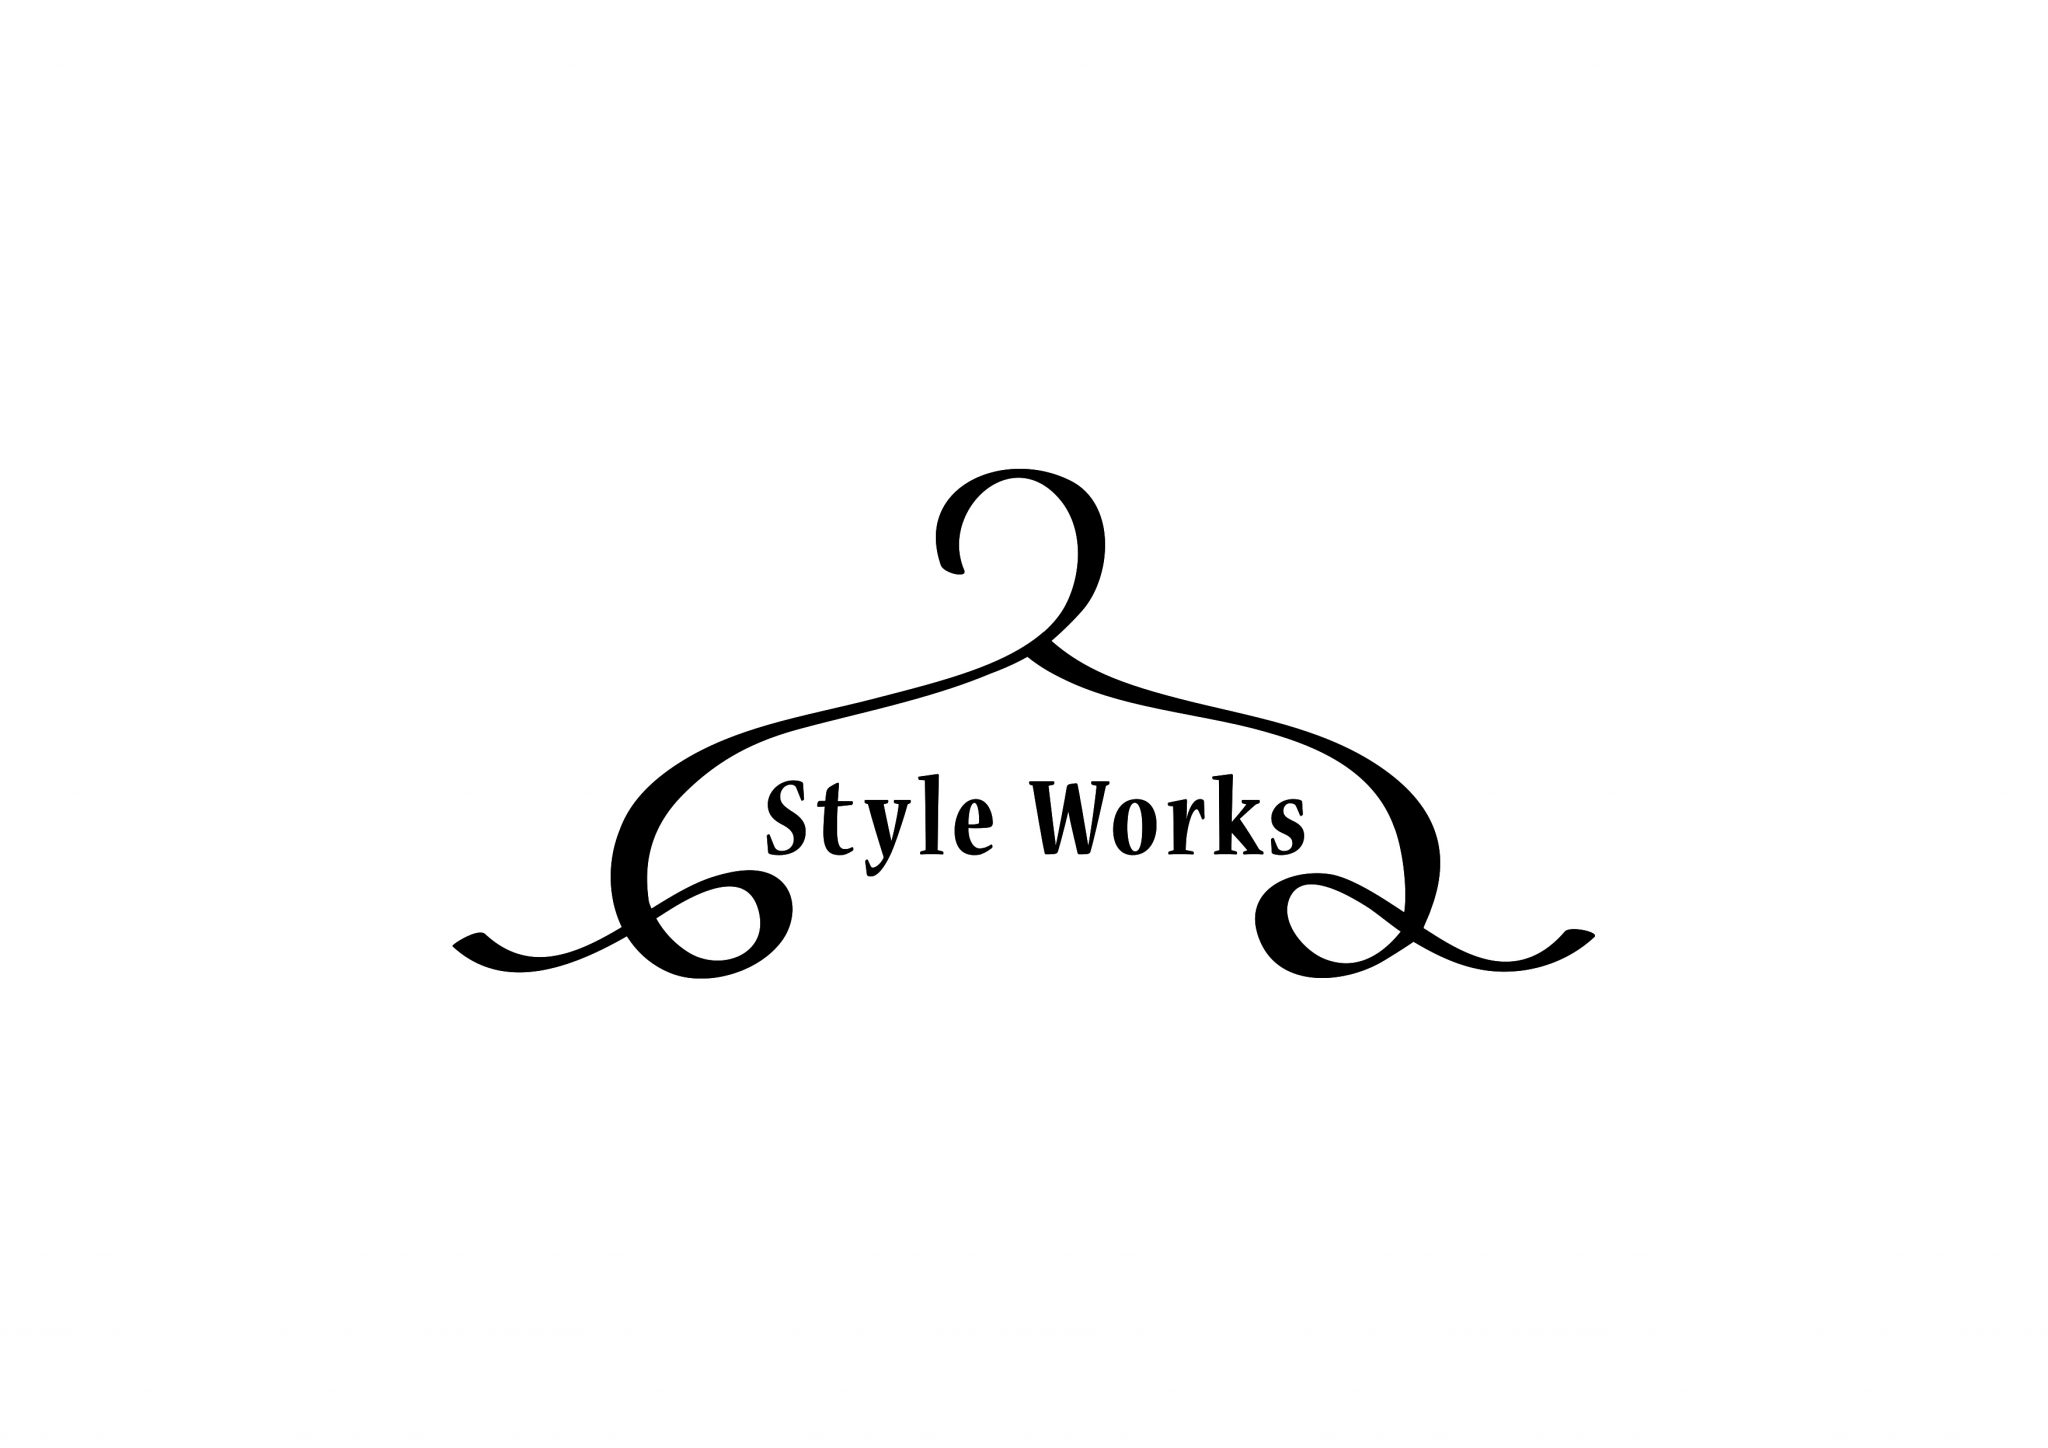 Style Works